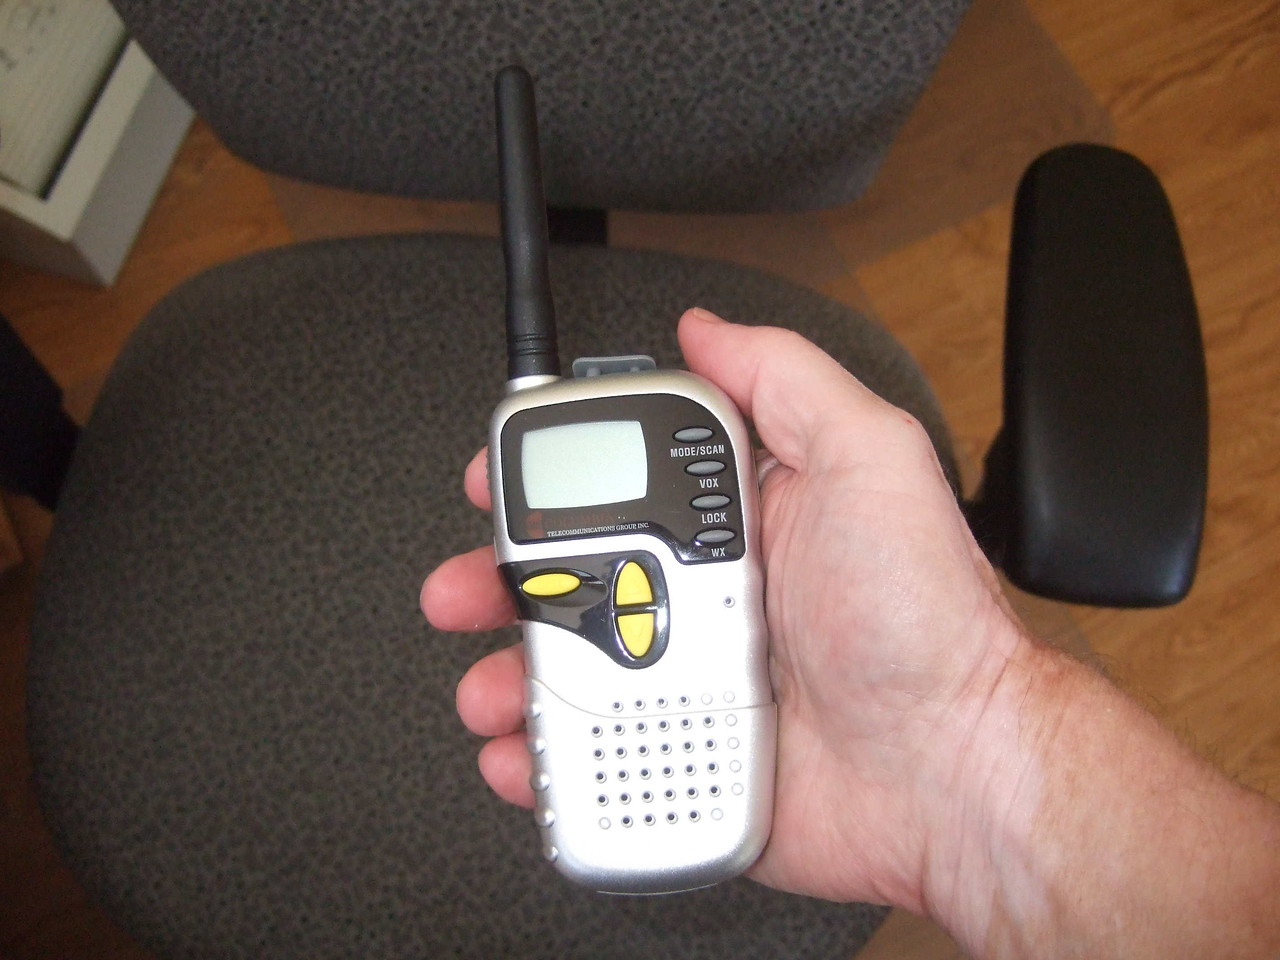 The radio is comfortably large, fitting the hand nicely. The gray part sticking up at the top is the cover for the mic-earpiece jacks. Note that the base is rounded - it won't stand up on the base, which is aggravating.<br /> <br /> The horizontal button near my finger is the CALL button - it transmits a deedle-deedle to all radios on the frequency. The two vertical yellow buttons are the UP and DOWN button; when it receive, they control volume. The gray button on top near my thumb is the MODE button - pressing it cycles through the various modes, then you use the UP or DOWN button to make selections within a MODE (select channels, for example, or CTCSS tones). The second gray button toggles VOX, the third gray button locks/unlocks the radio, and the bottom gray button toggles WX from NOAA.